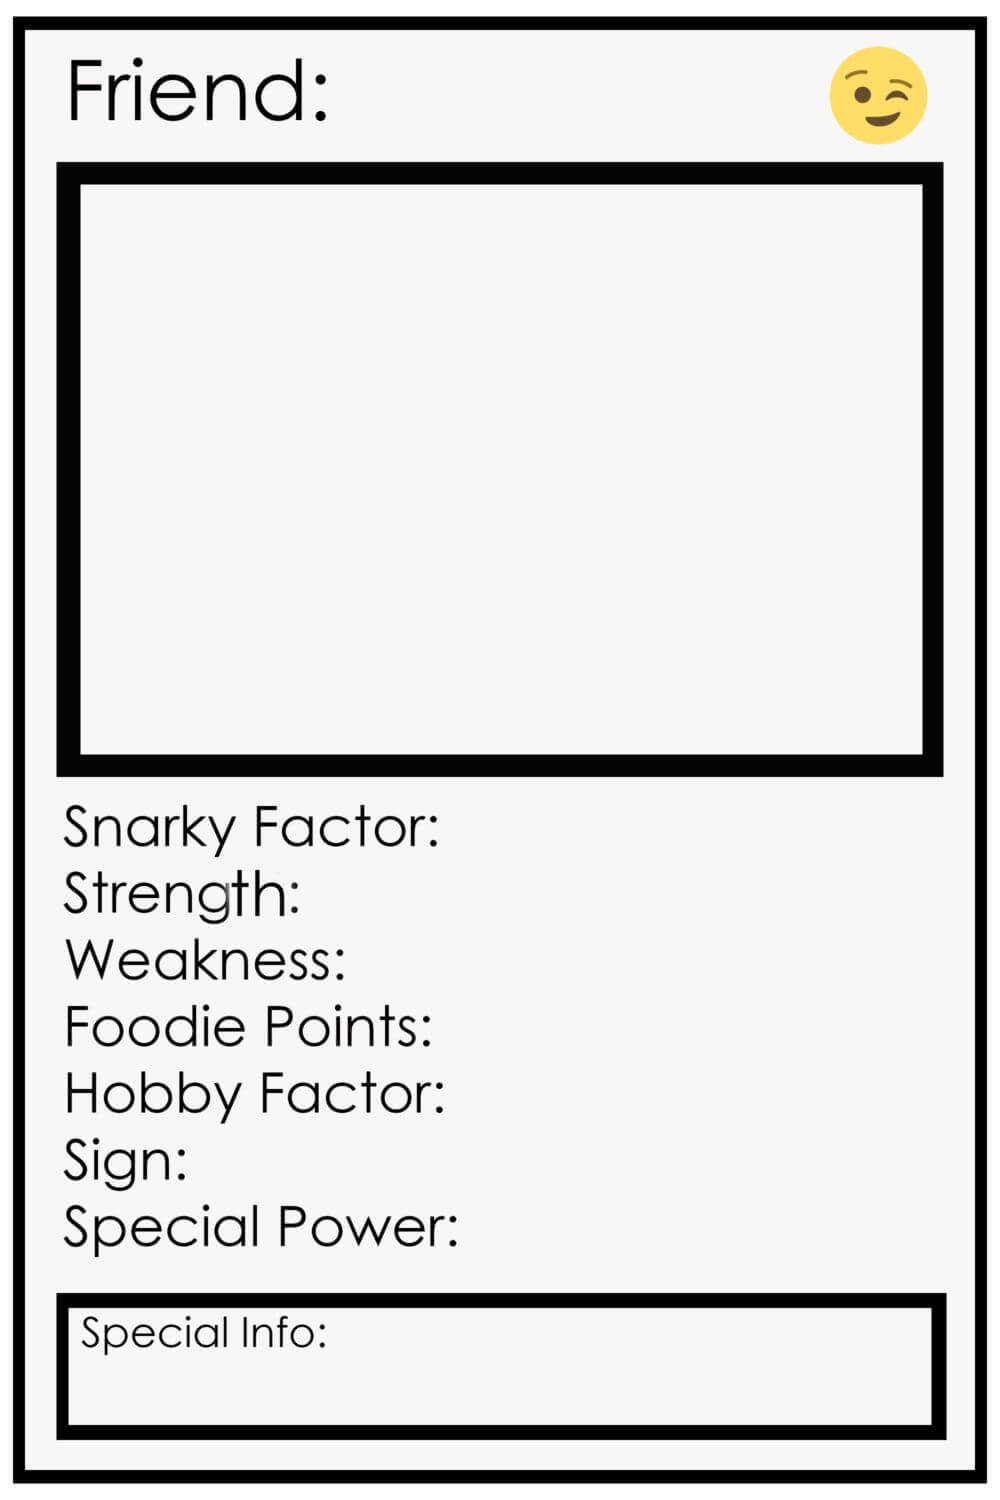 Free Trading Card Template Download - Atlantaauctionco for Free Trading Card Template Download